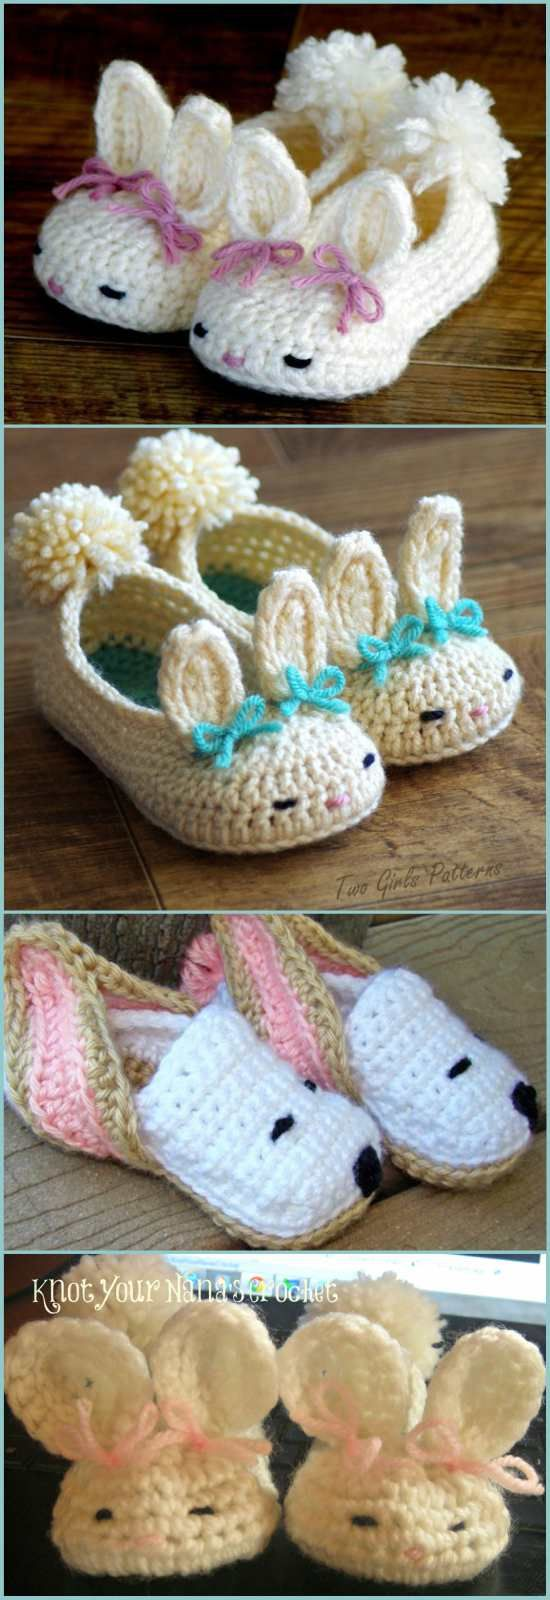 Baby Bunny Slippers [Crochet Patterns, Free Crochet Patterns and Video Tutorials]